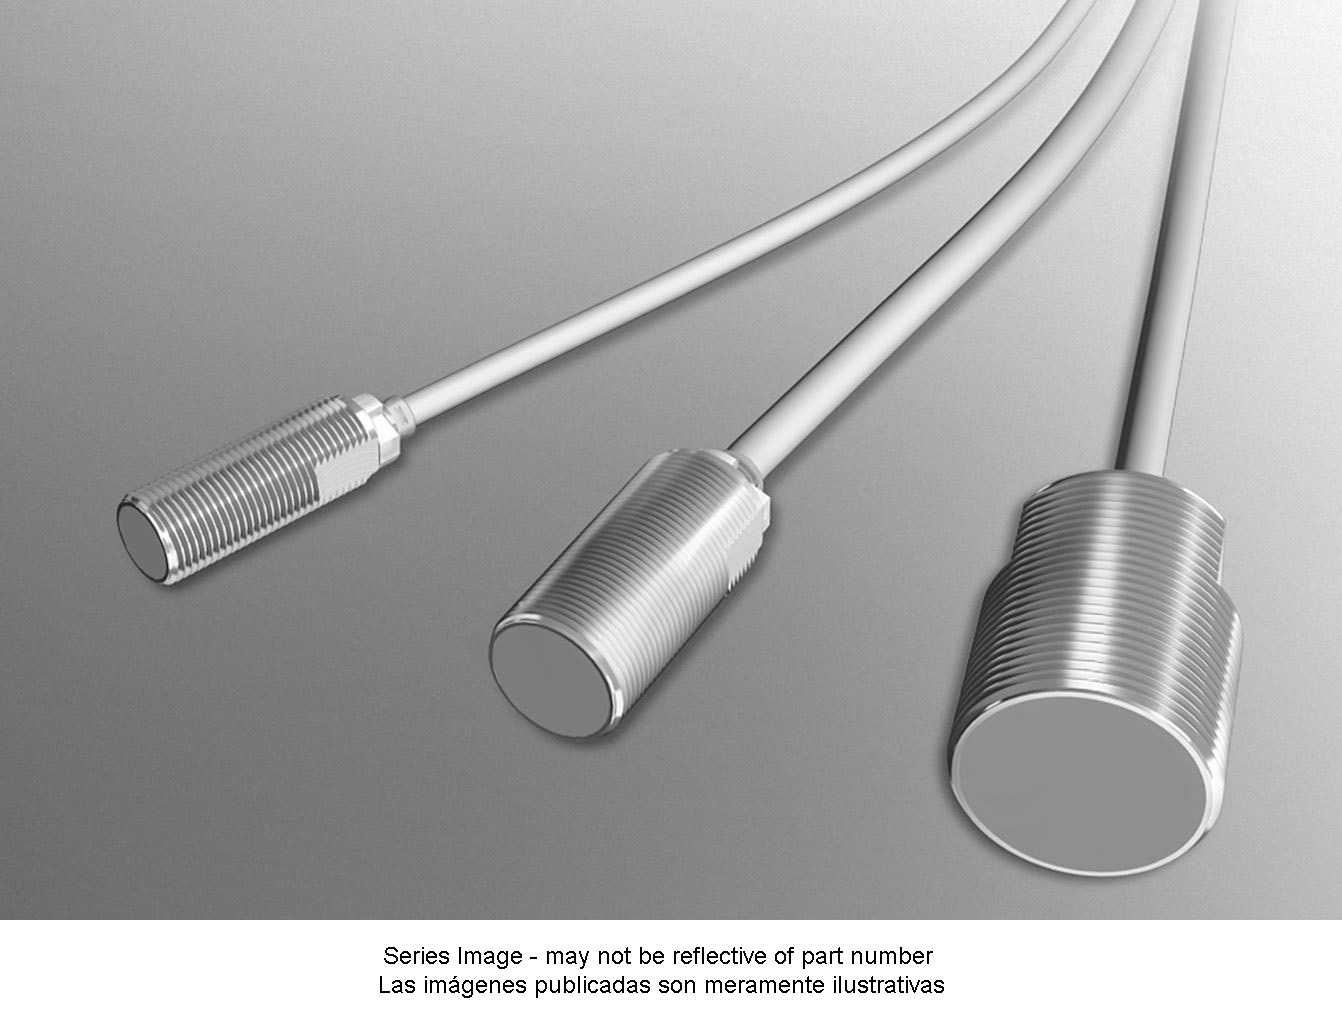 DC 2-Wire Aluminum-Chip Resistant Cylindrical Proximity Switches